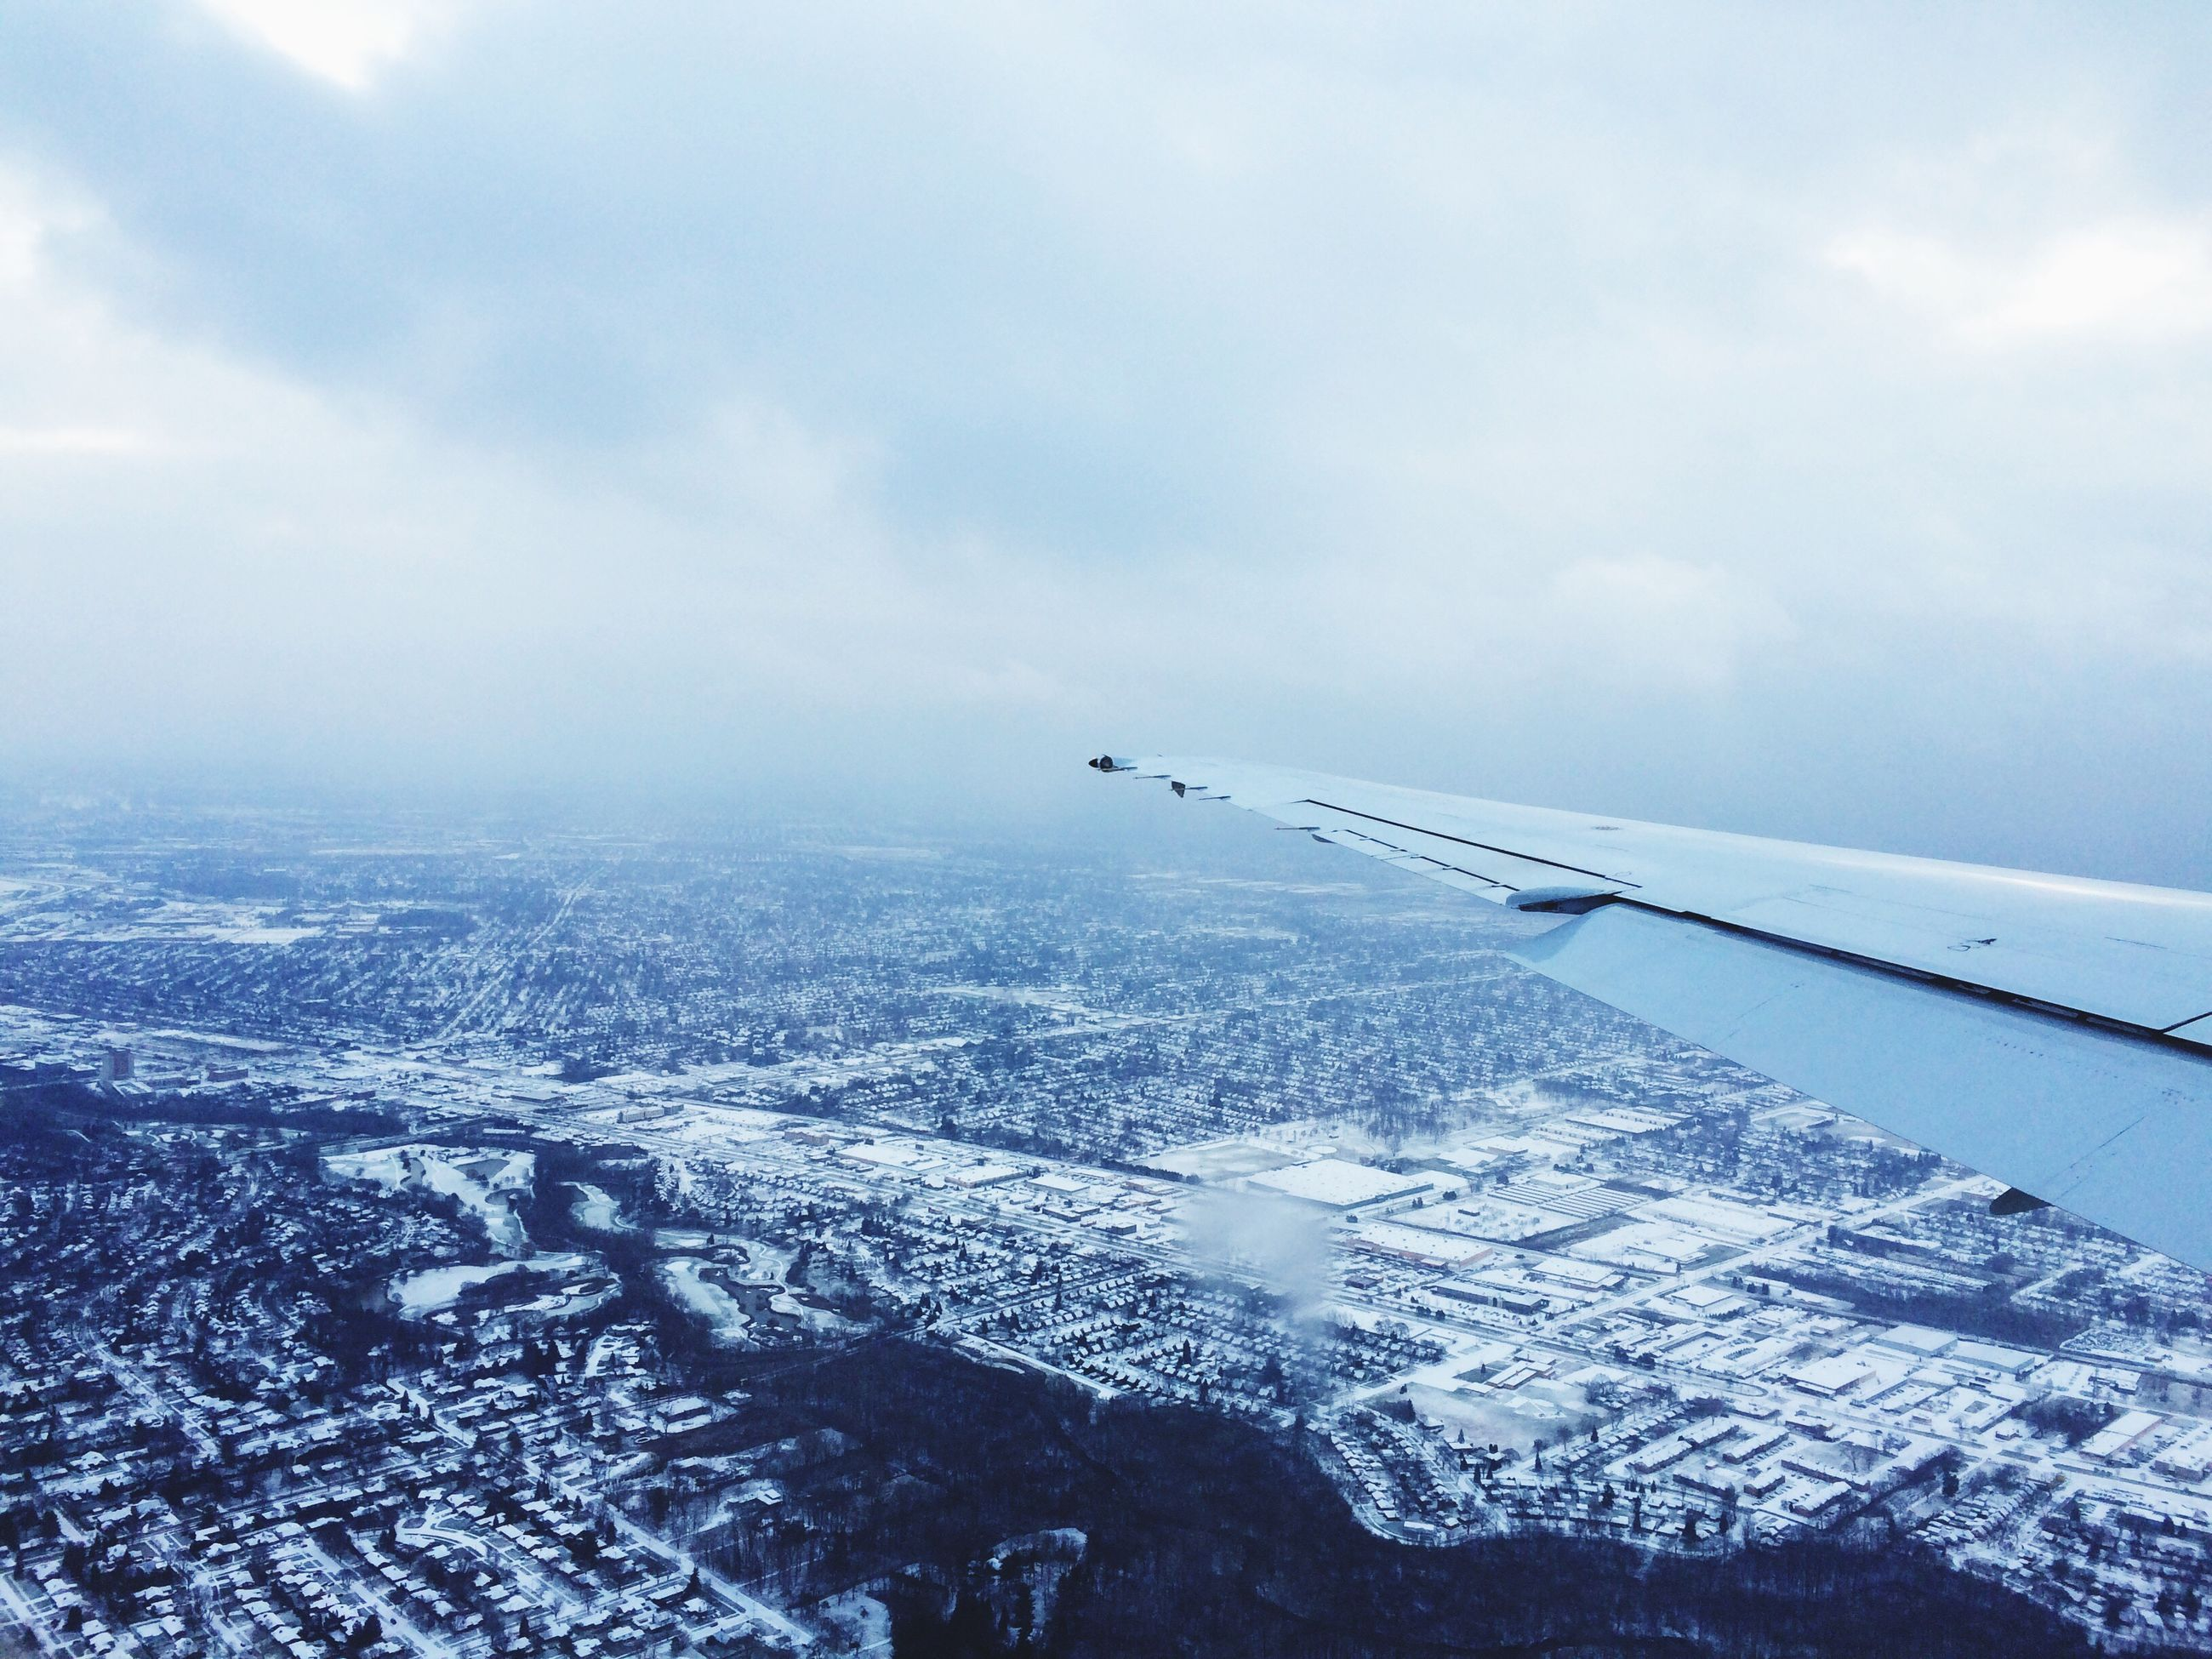 flying, airplane, air vehicle, aerial view, aircraft wing, sky, transportation, mid-air, winter, snow, mode of transport, landscape, nature, cloud - sky, scenics, cold temperature, beauty in nature, public transportation, weather, tranquil scene